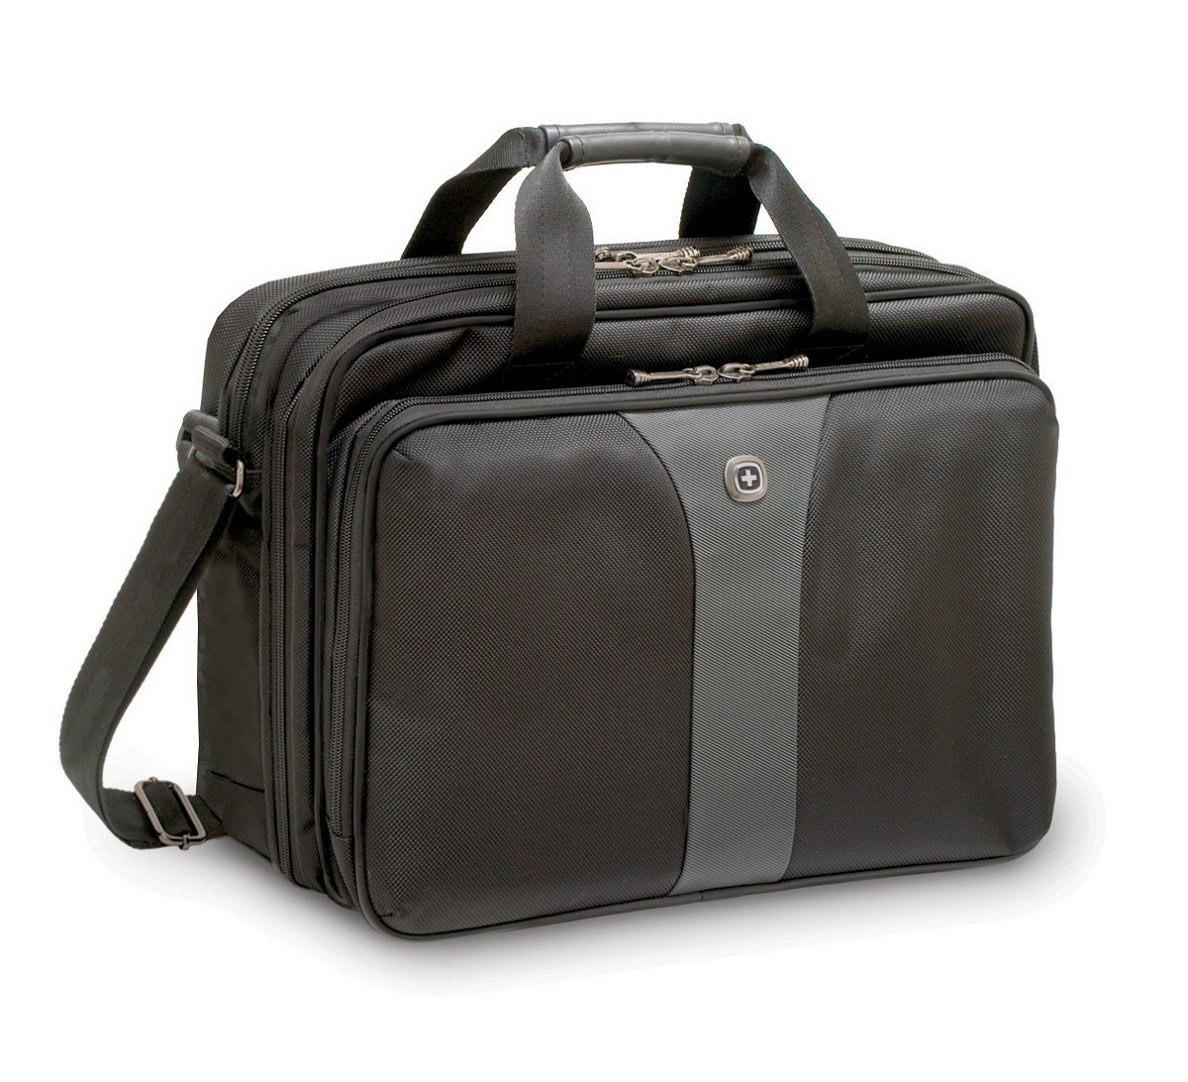 Wenger WA-7652-14F00 Legacy 16'' Double Gusset Laptop Case, Black/Gray by Wenger